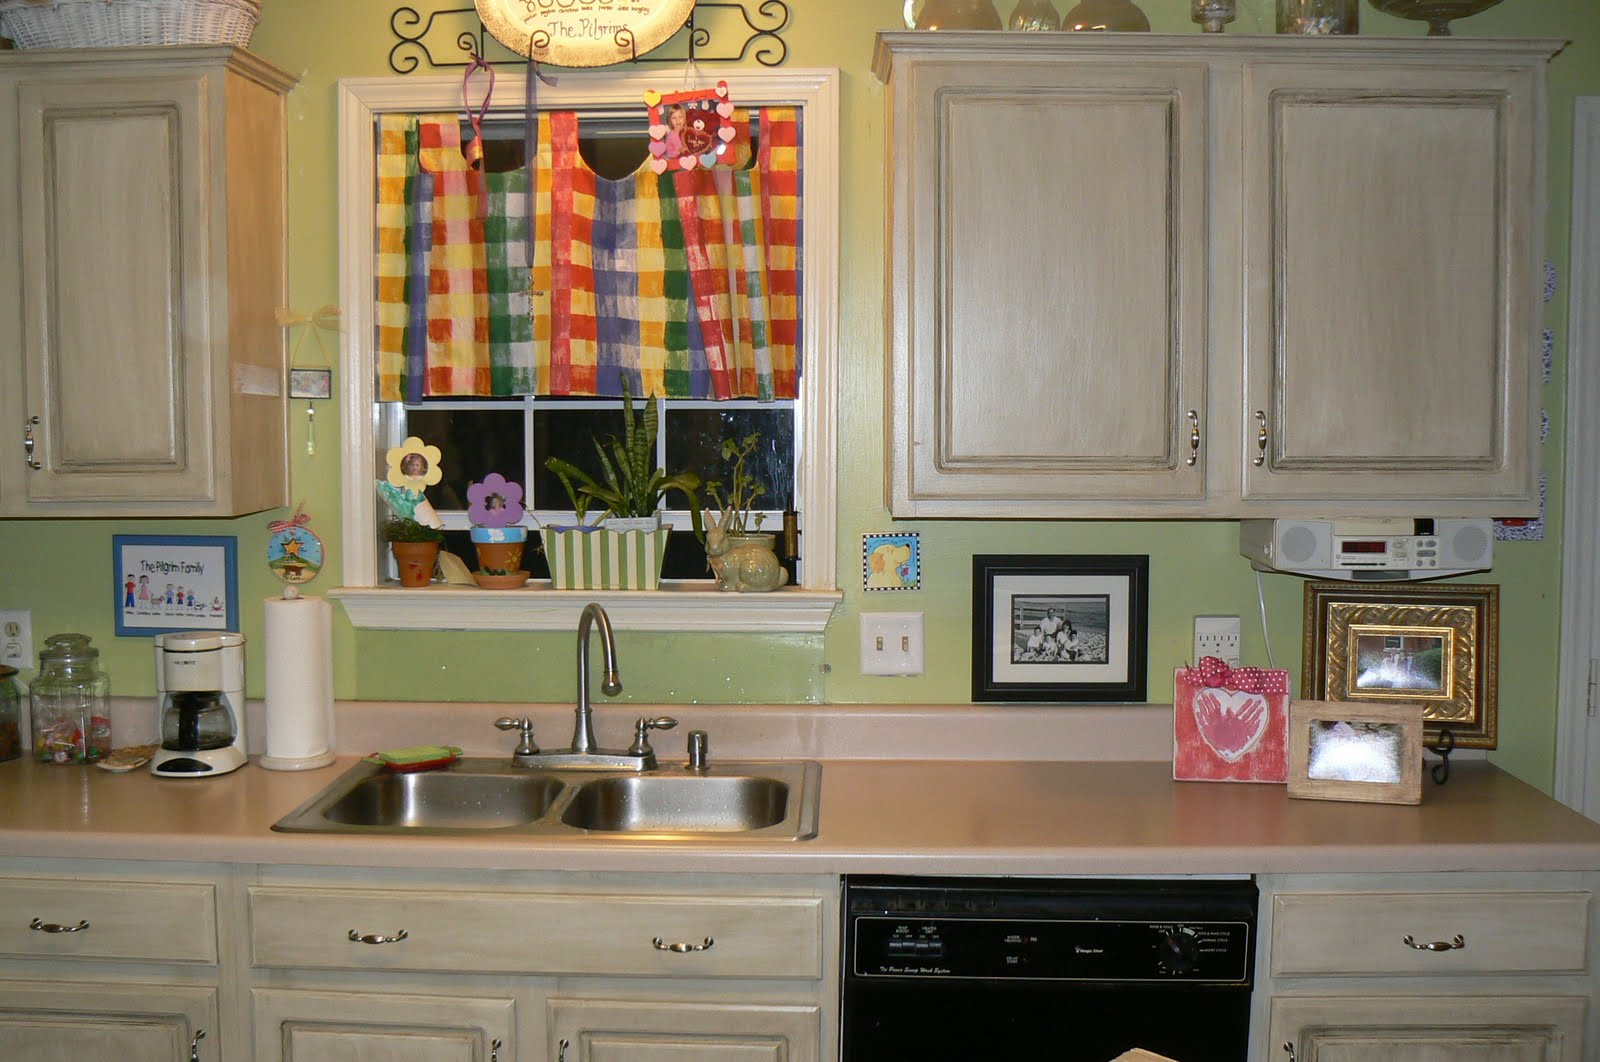 How to glaze kitchen cabinets for painting